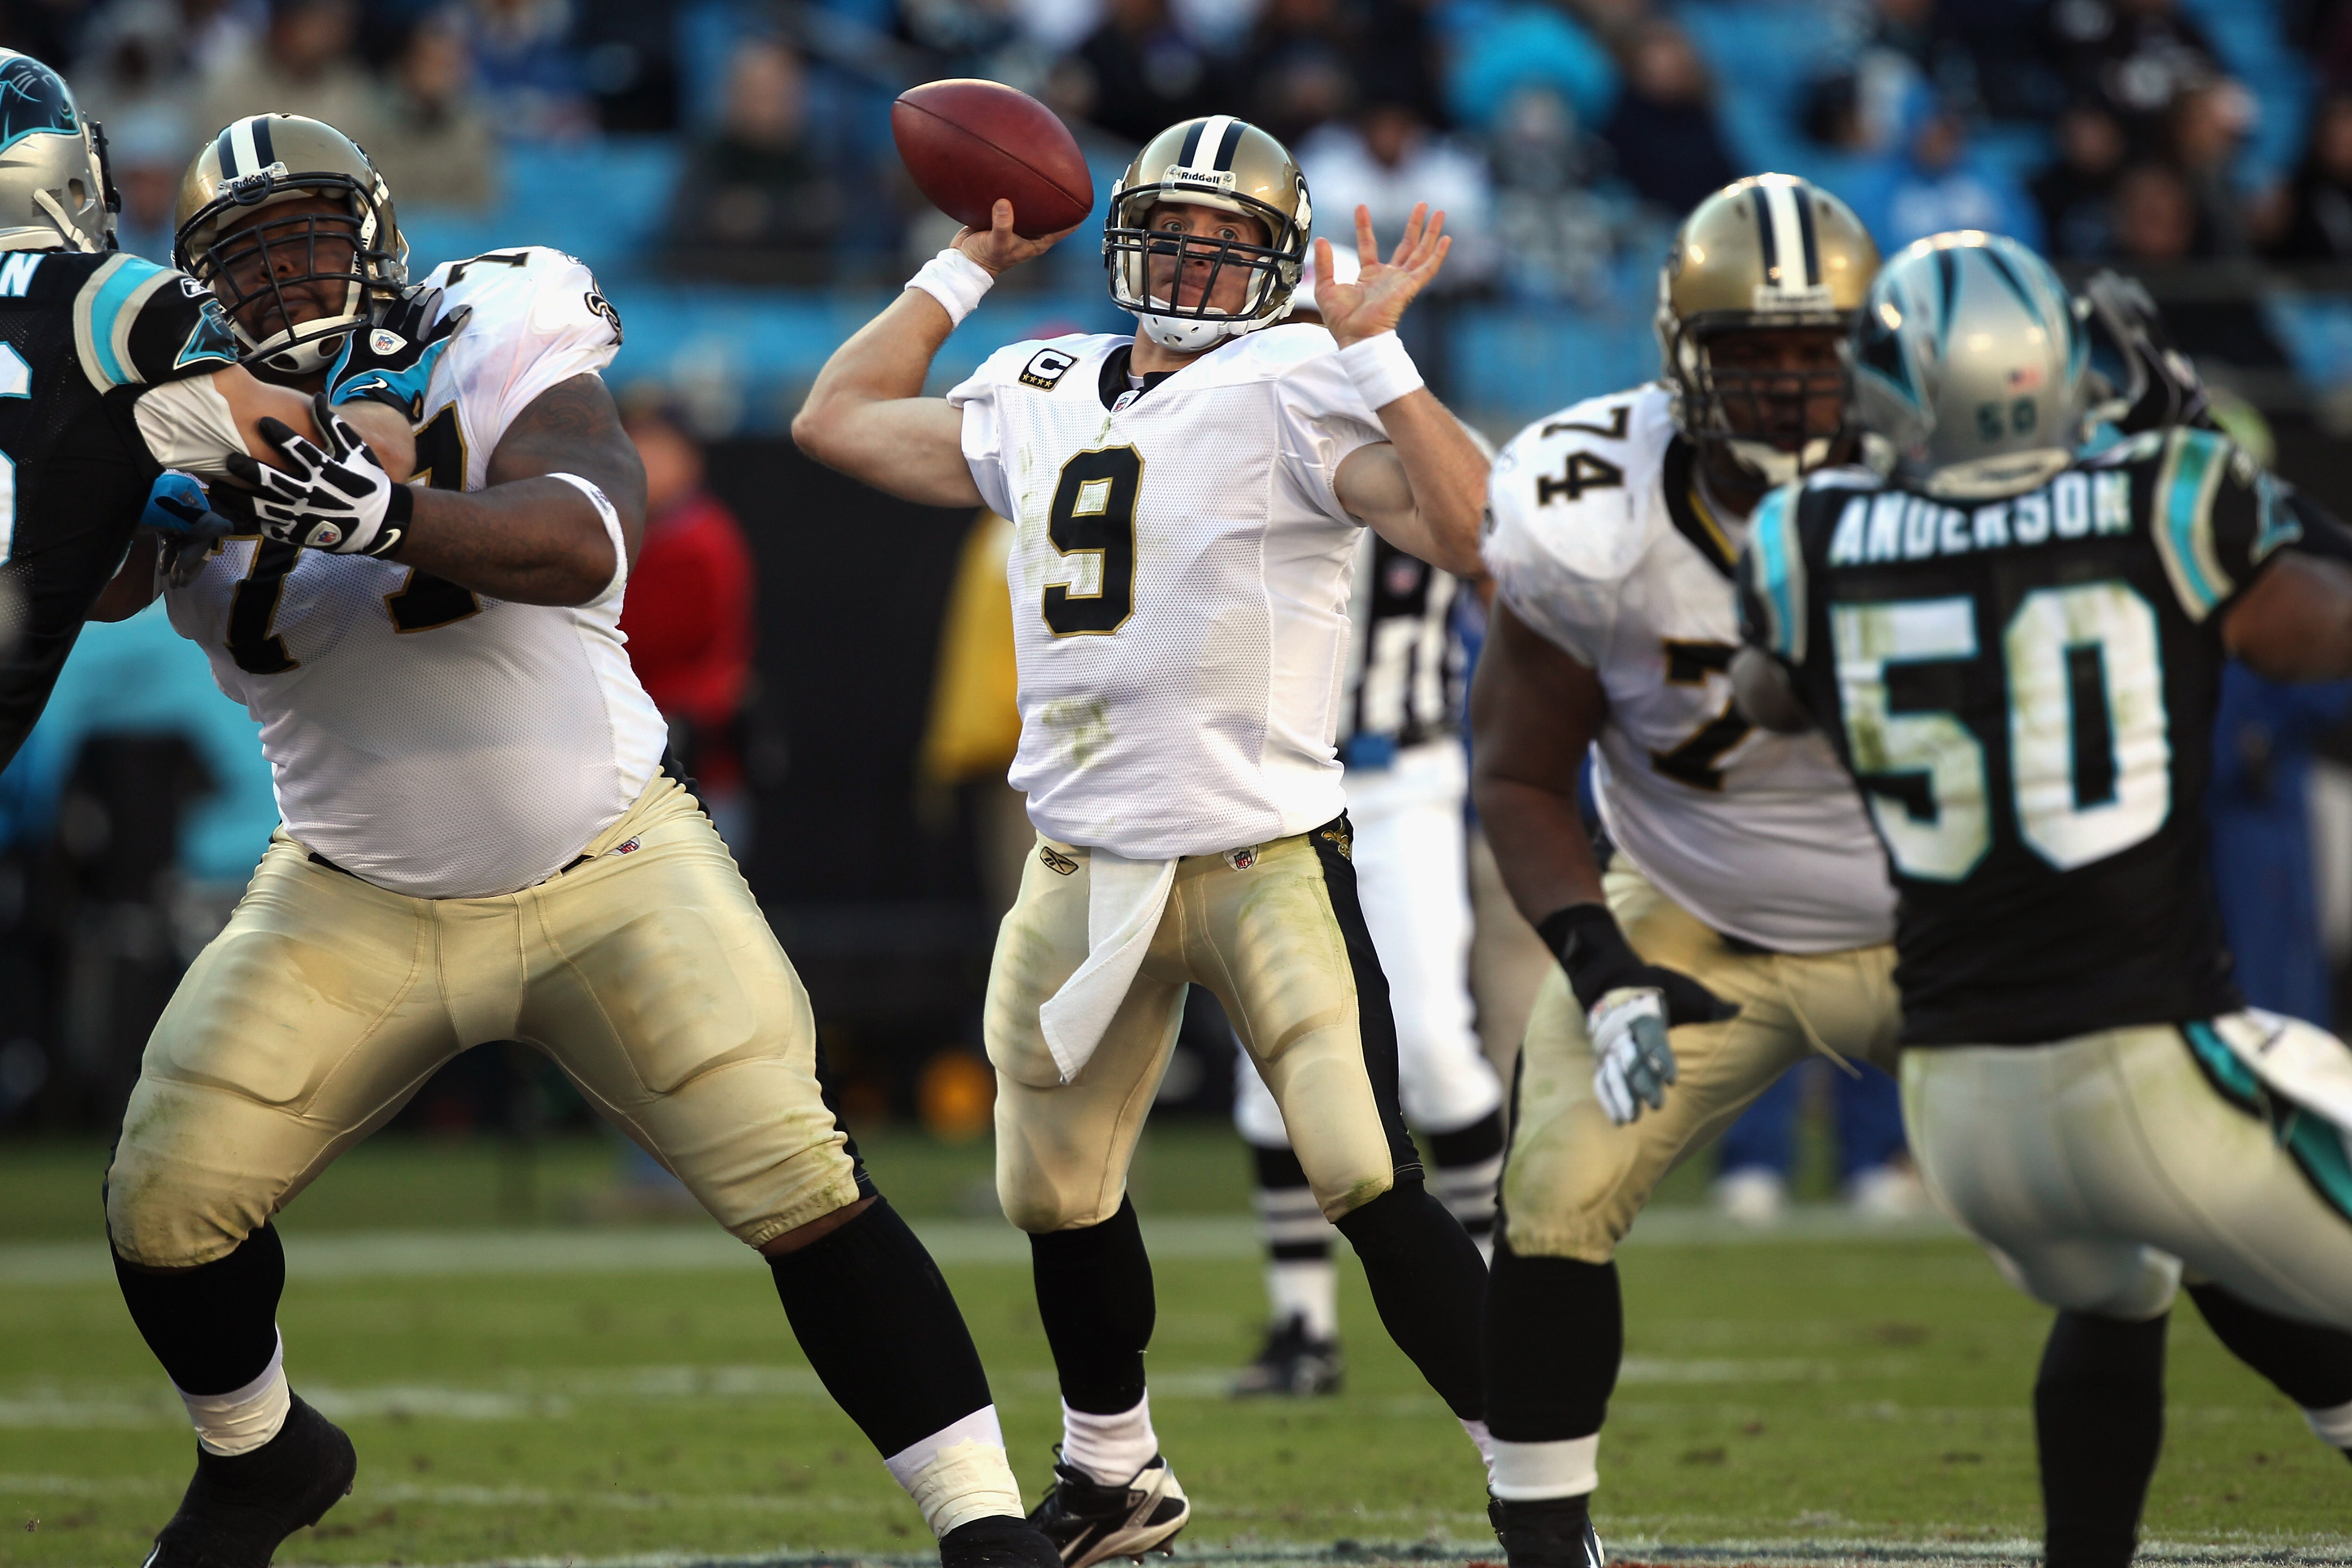 CHARLOTTE, NC - NOVEMBER 07:  Drew Brees #9 of the New Orleans Saints against the Carolina Panthers during their game at Bank of America Stadium on November 7, 2010 in Charlotte, North Carolina.  (Photo by Streeter Lecka/Getty Images)